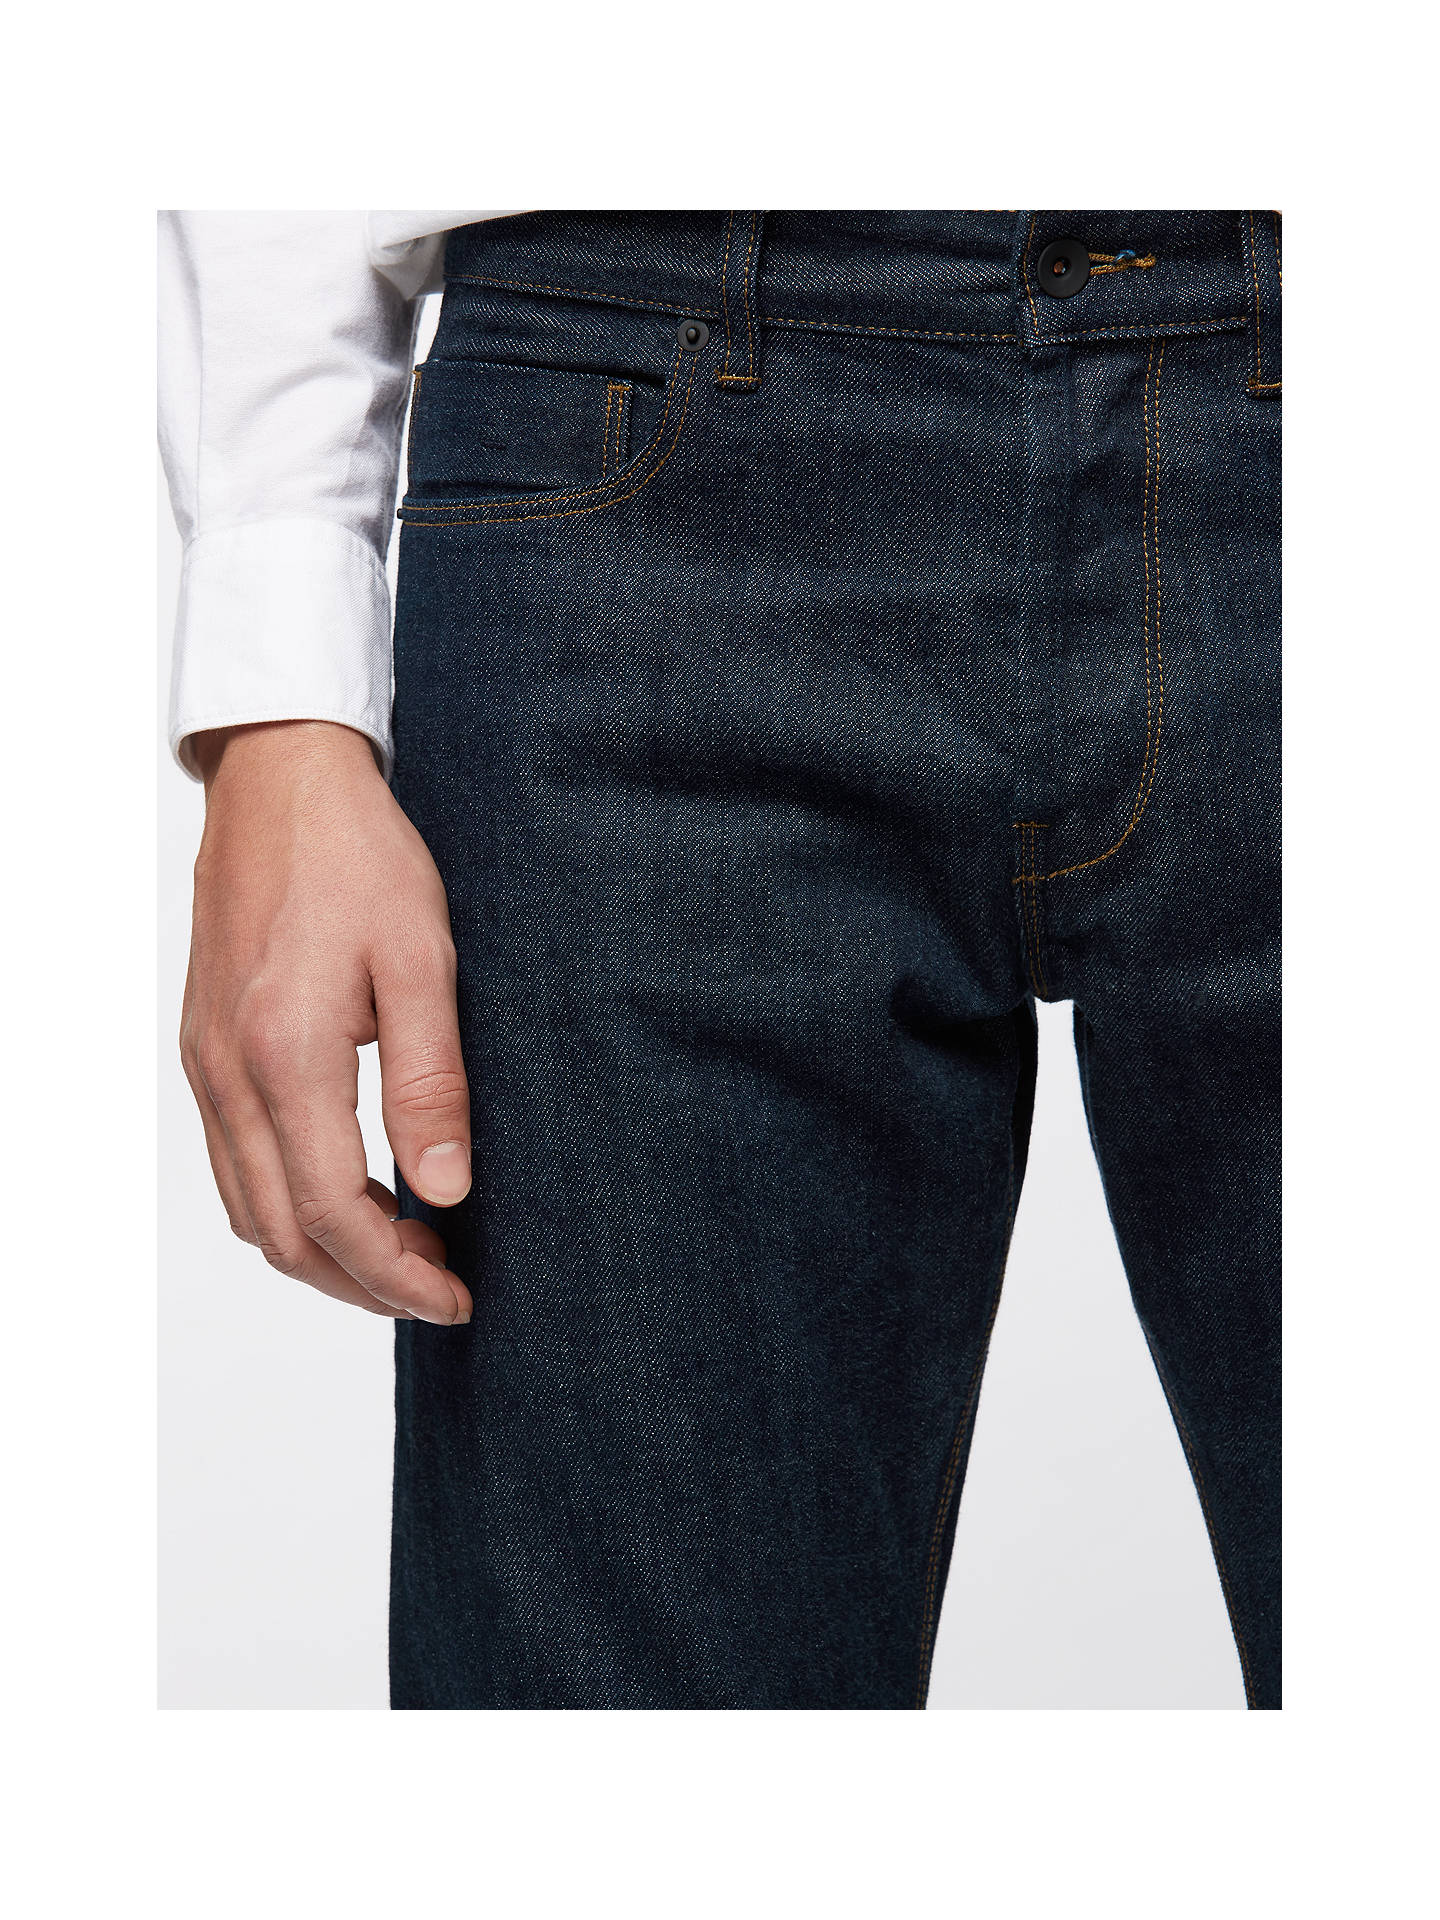 BuyJigsaw Japanese Selvedge Denim Straight Jeans, Indigo, 30R Online at johnlewis.com